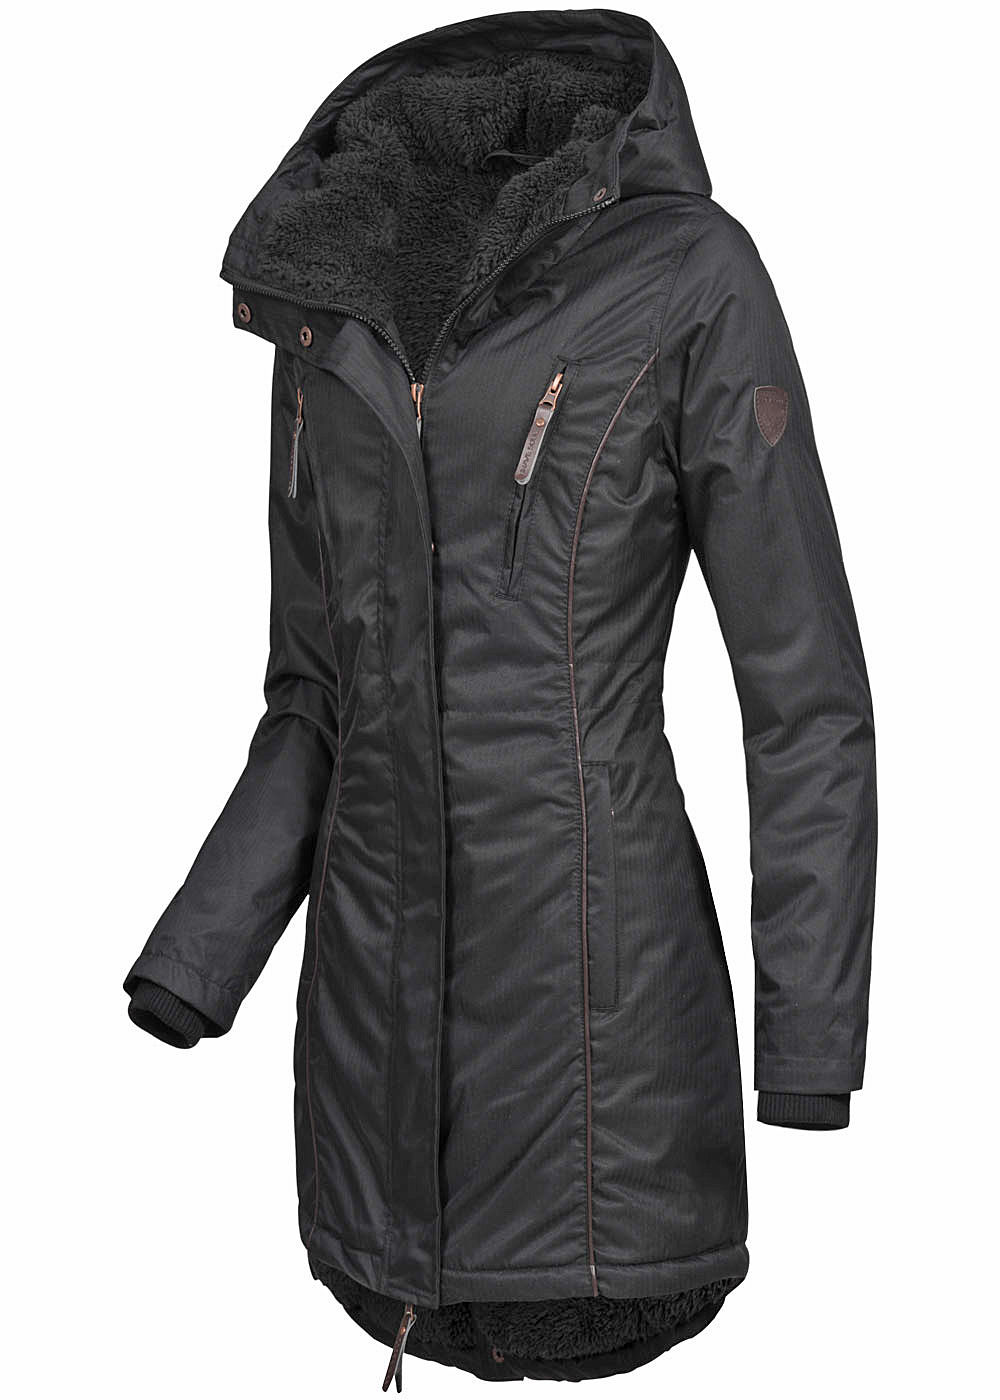 seventyseven lifestyle damen winter parka kapuze teddyfell innen 4 taschen schwarz 77onlineshop. Black Bedroom Furniture Sets. Home Design Ideas